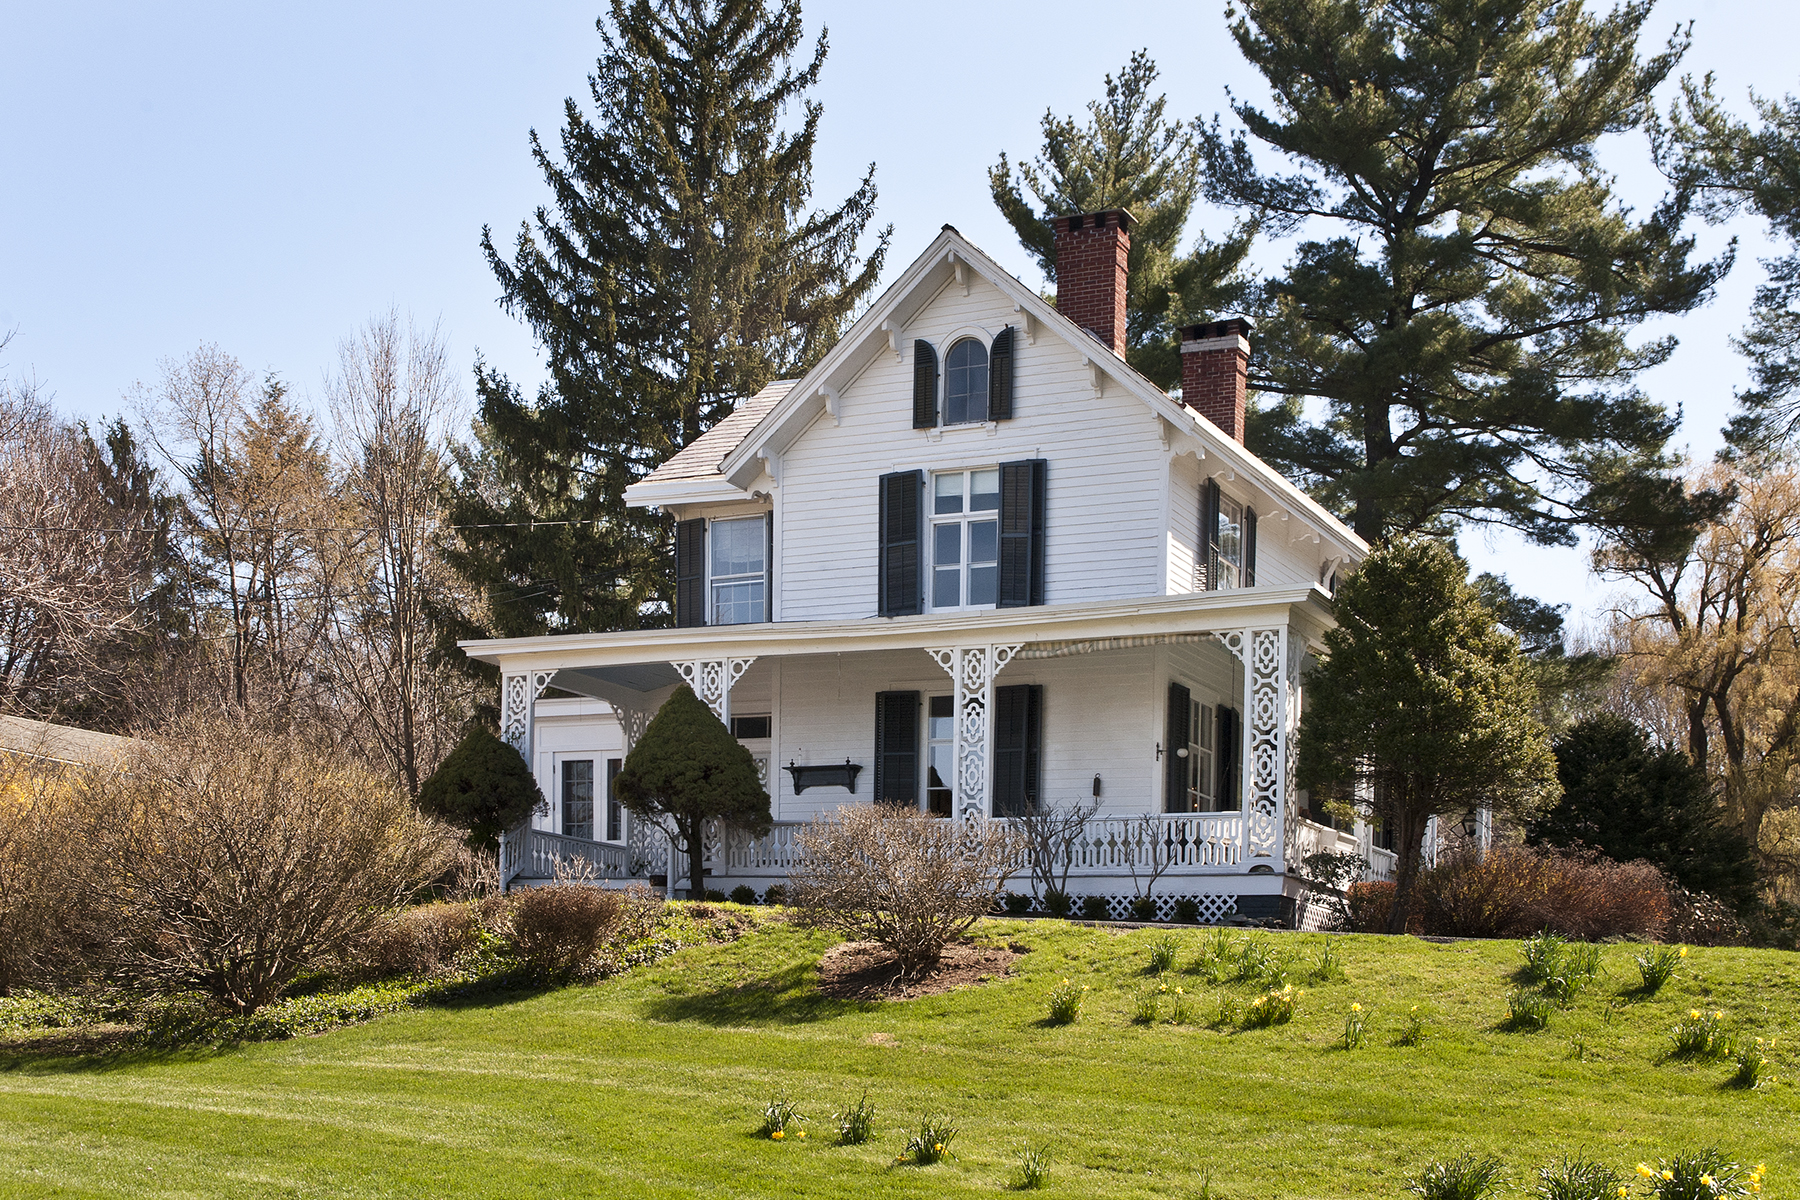 Single Family Home for Sale at Speaker's Corner 21 Curry Lane Hyde Park, New York 12538 United States